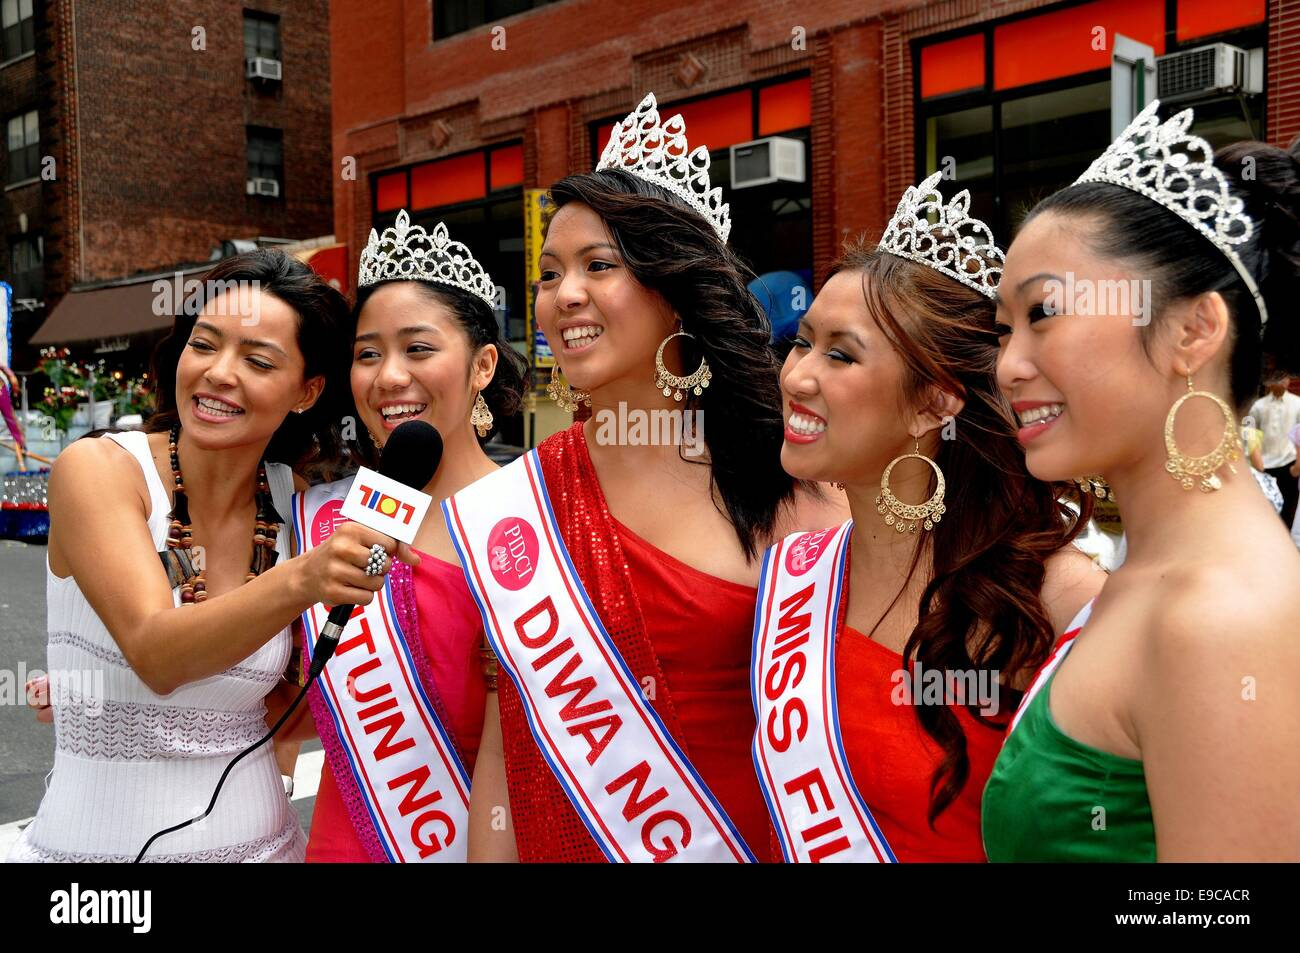 NYC: TV broadcaster interviews Filippina beauty queens